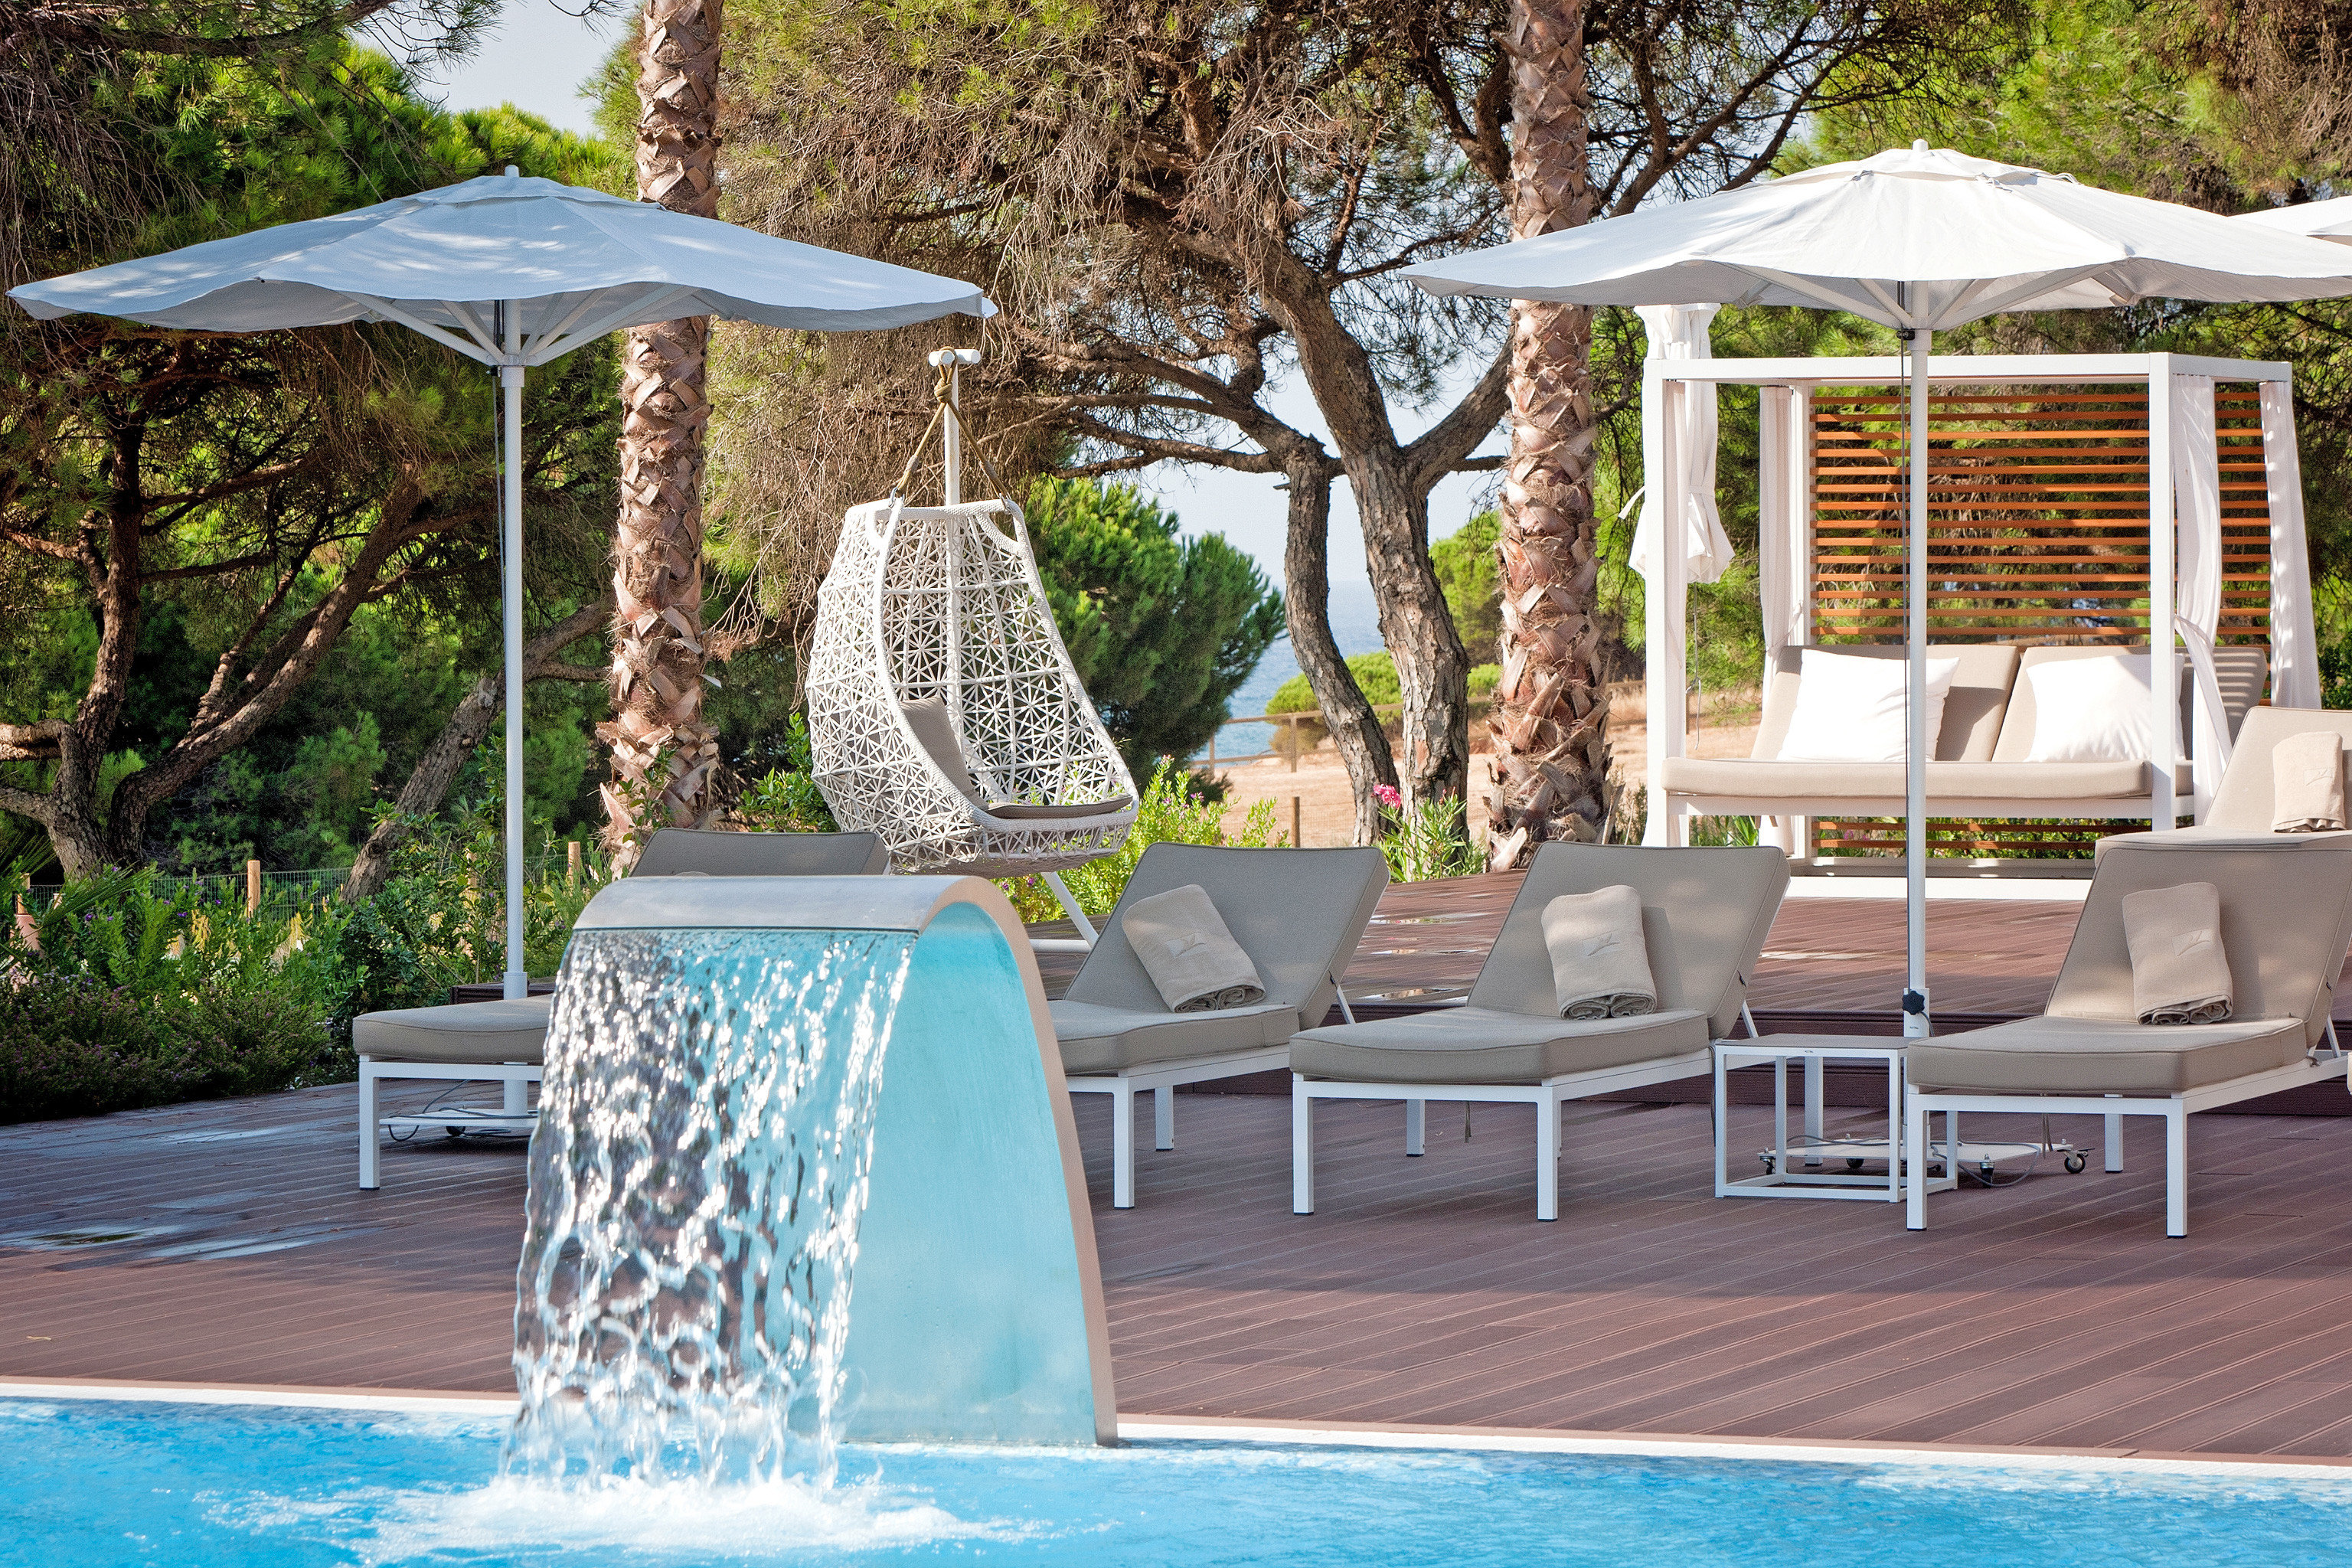 Lounge Pool Scenic views tree ground chair swimming pool leisure backyard outdoor structure Villa gazebo cottage Resort porch Deck